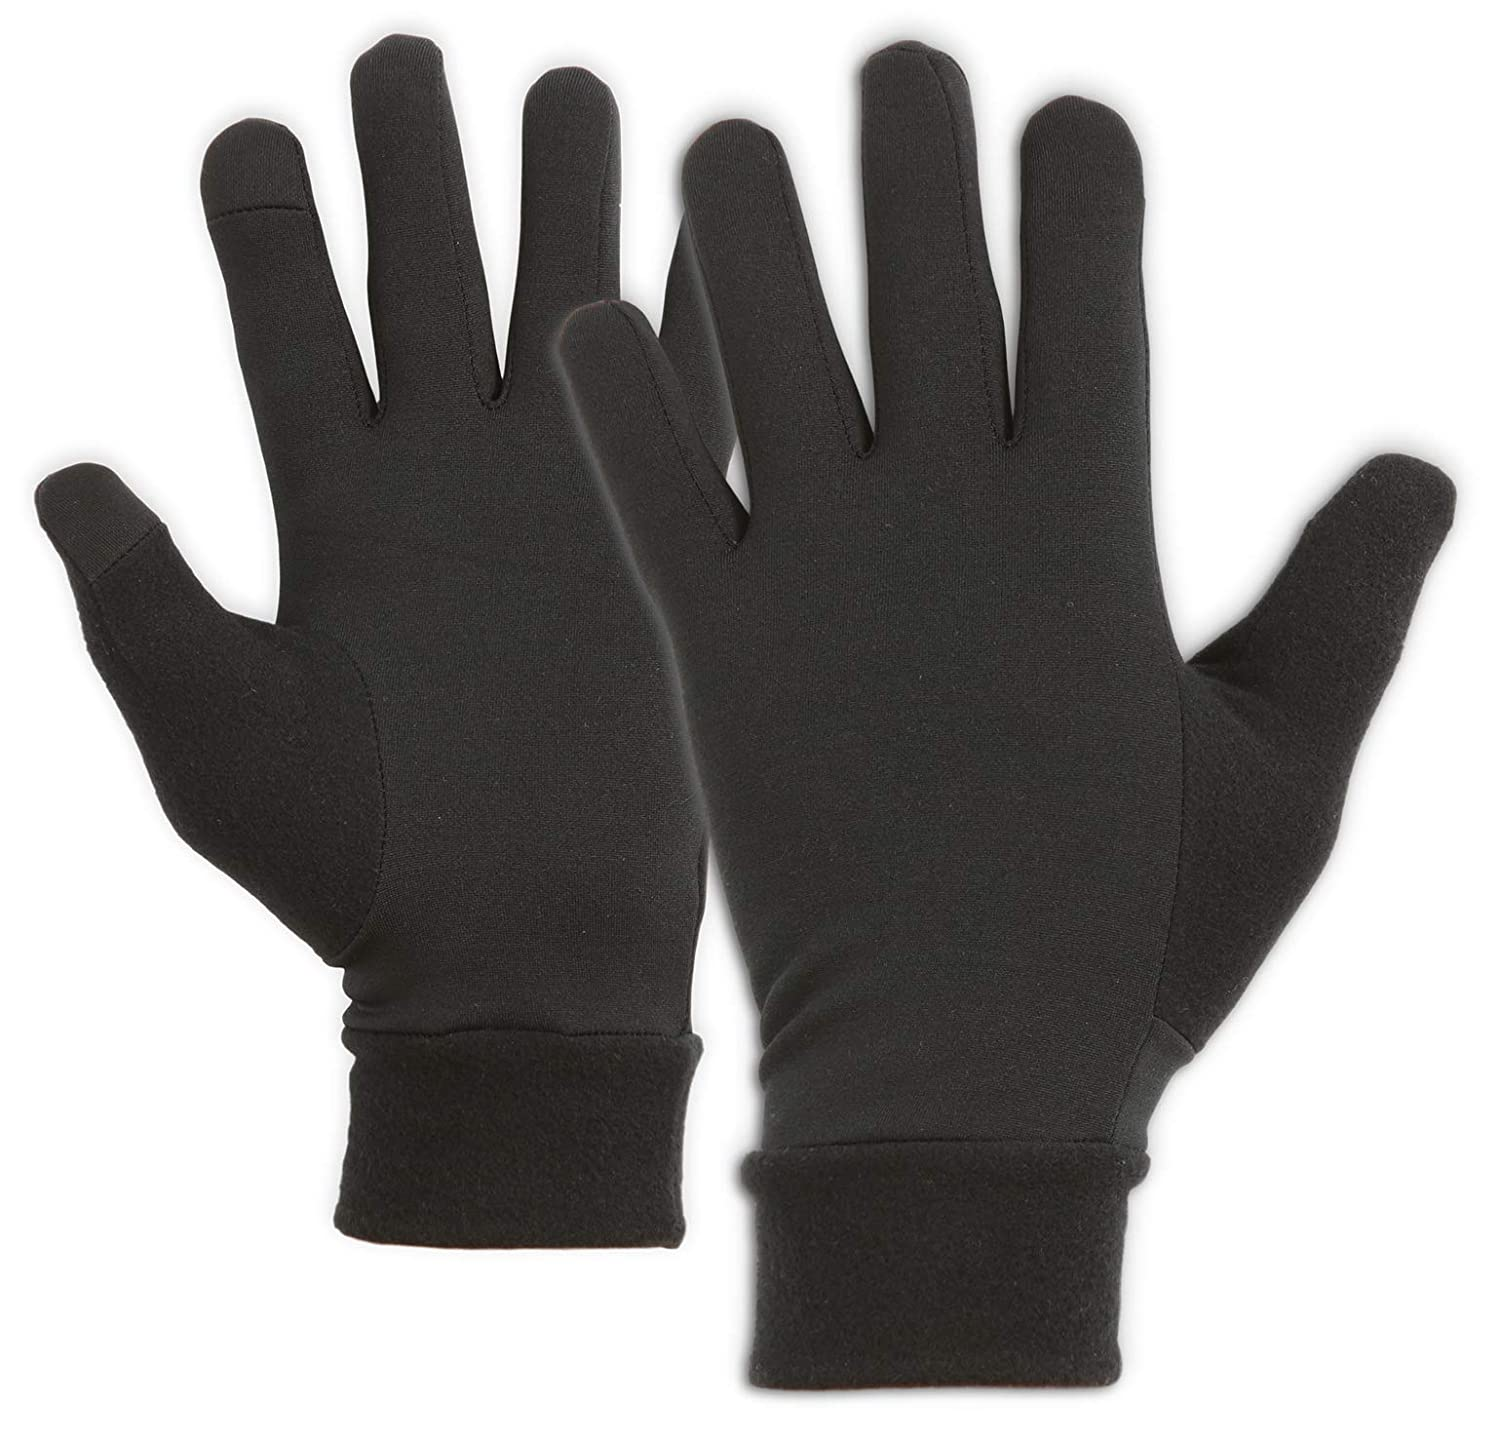 IGN1TE Touch Screen Gloves - Thermal Glove Liners Designed for Running, Skiing, Snowboarding, Cycling & Texting - 90% Nylon 10% Spandex Reinforced Blend - Fits Men & Women